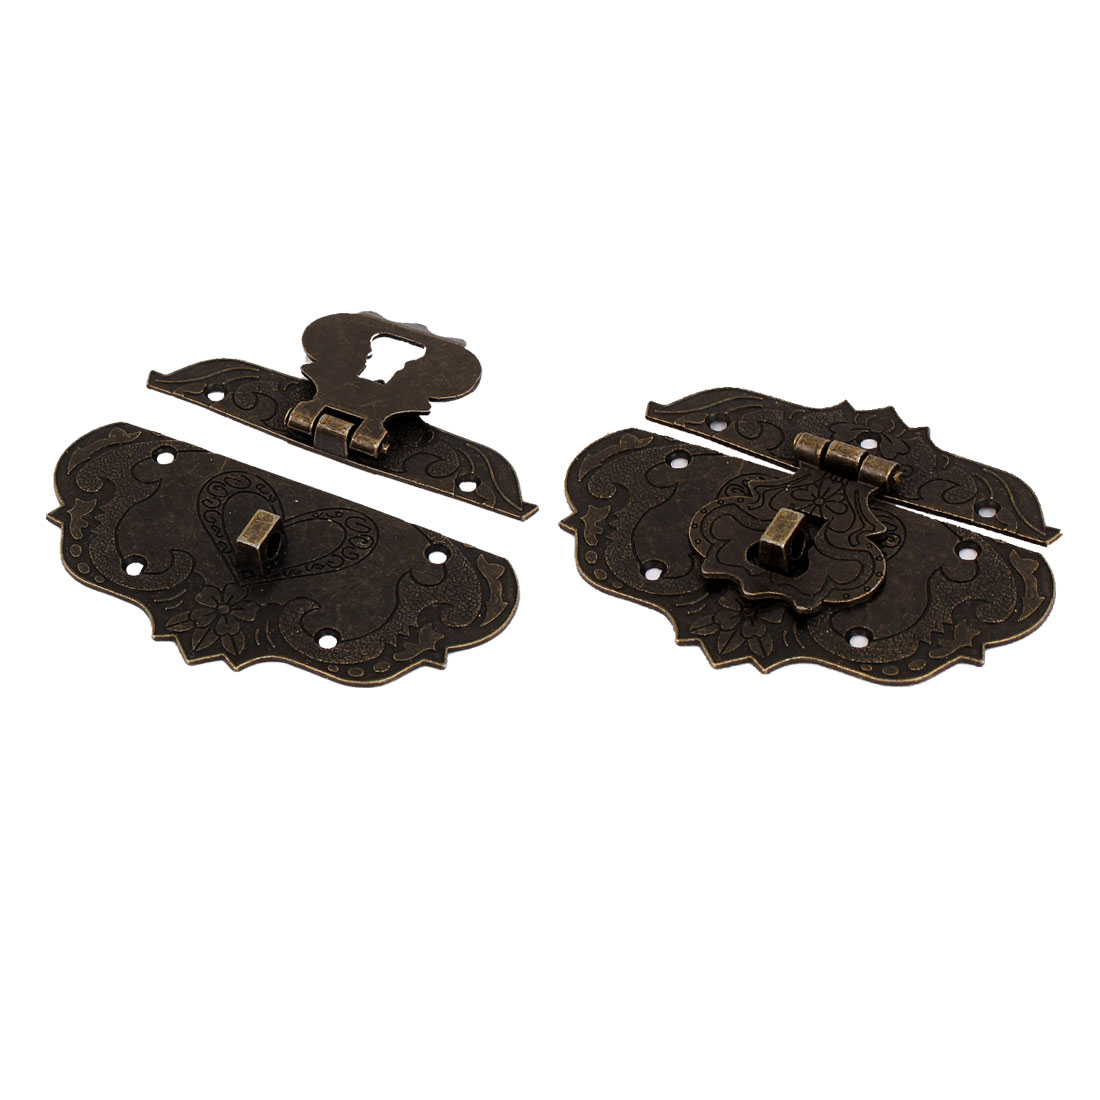 2 Pcs Cabinet Suitcase Antique Style Metal Box Latch Hasp Bronze Tone